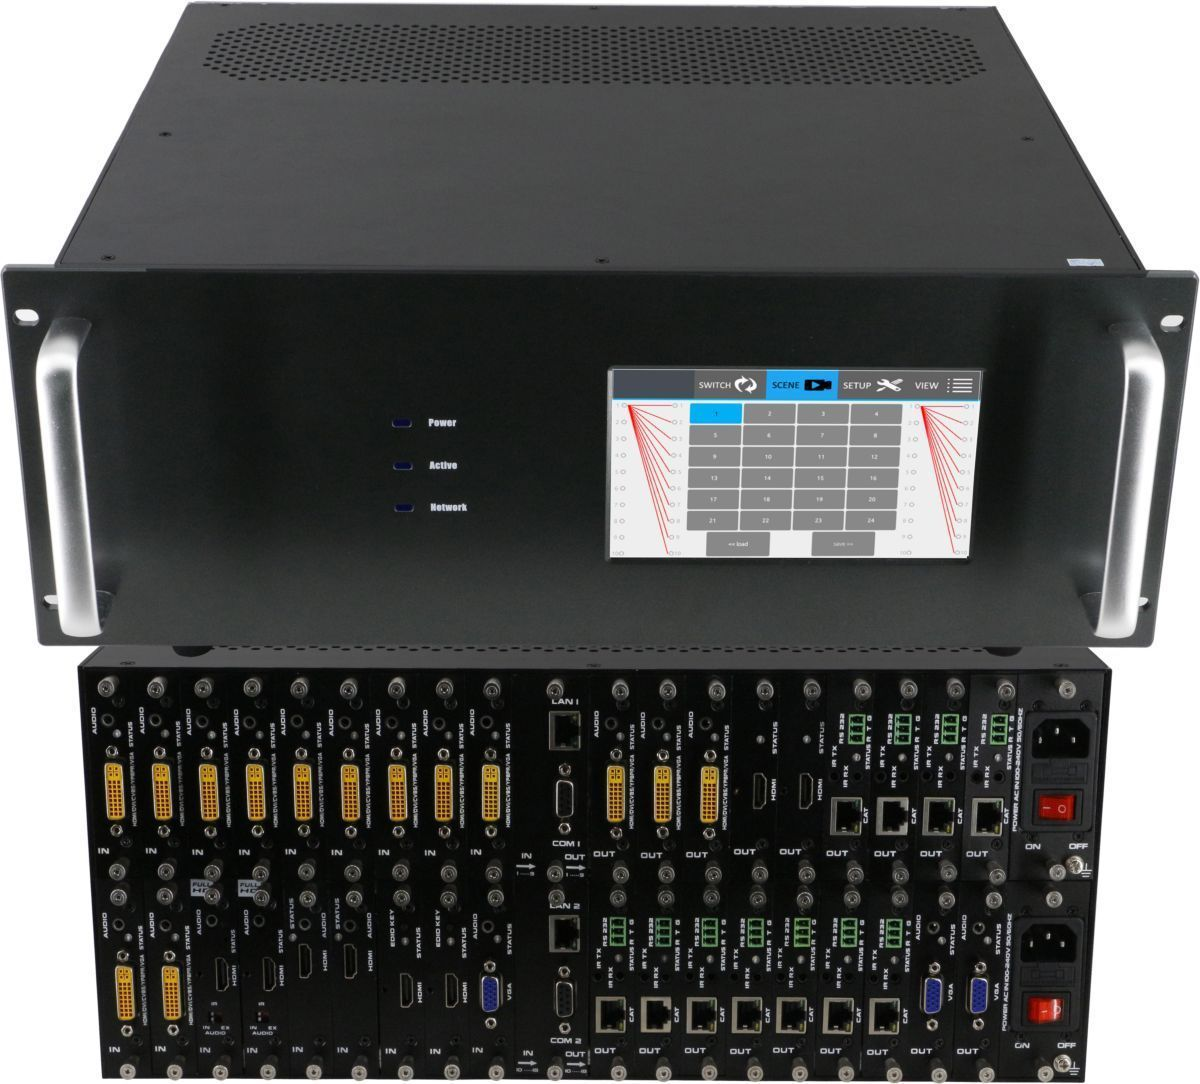 4K 8x18 HDMI Matrix Switcher with Color Touchscreen